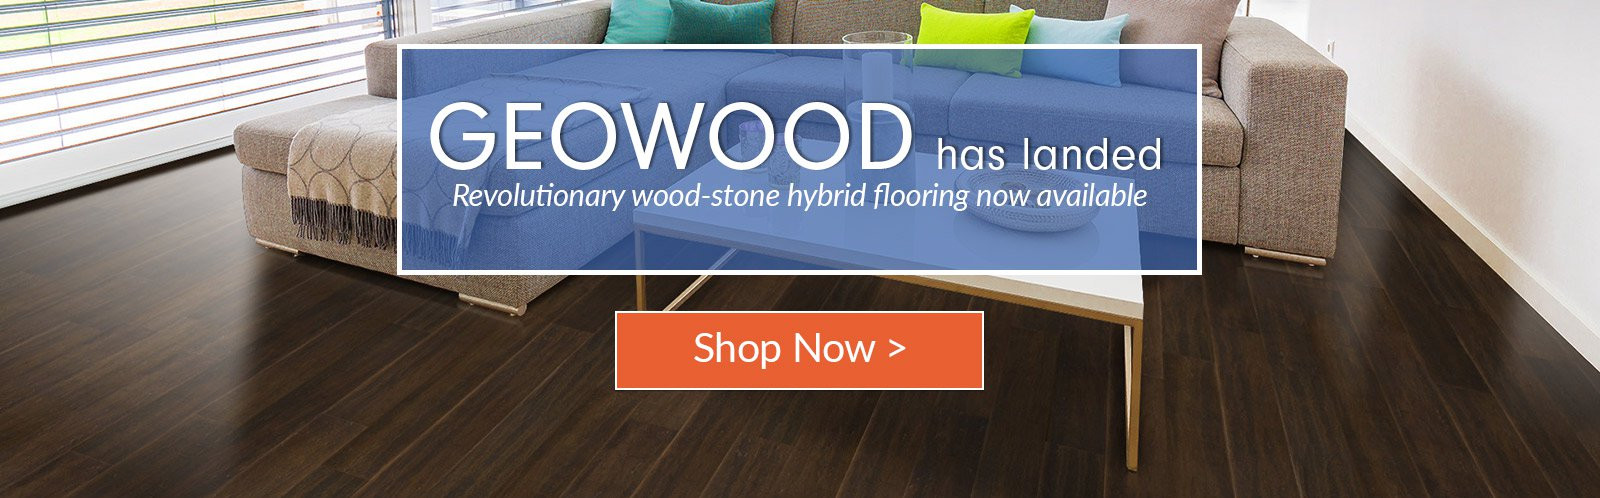 hardwood flooring outlet ontario of green building construction materials and home decor cali bamboo in geowood launch homepage slider